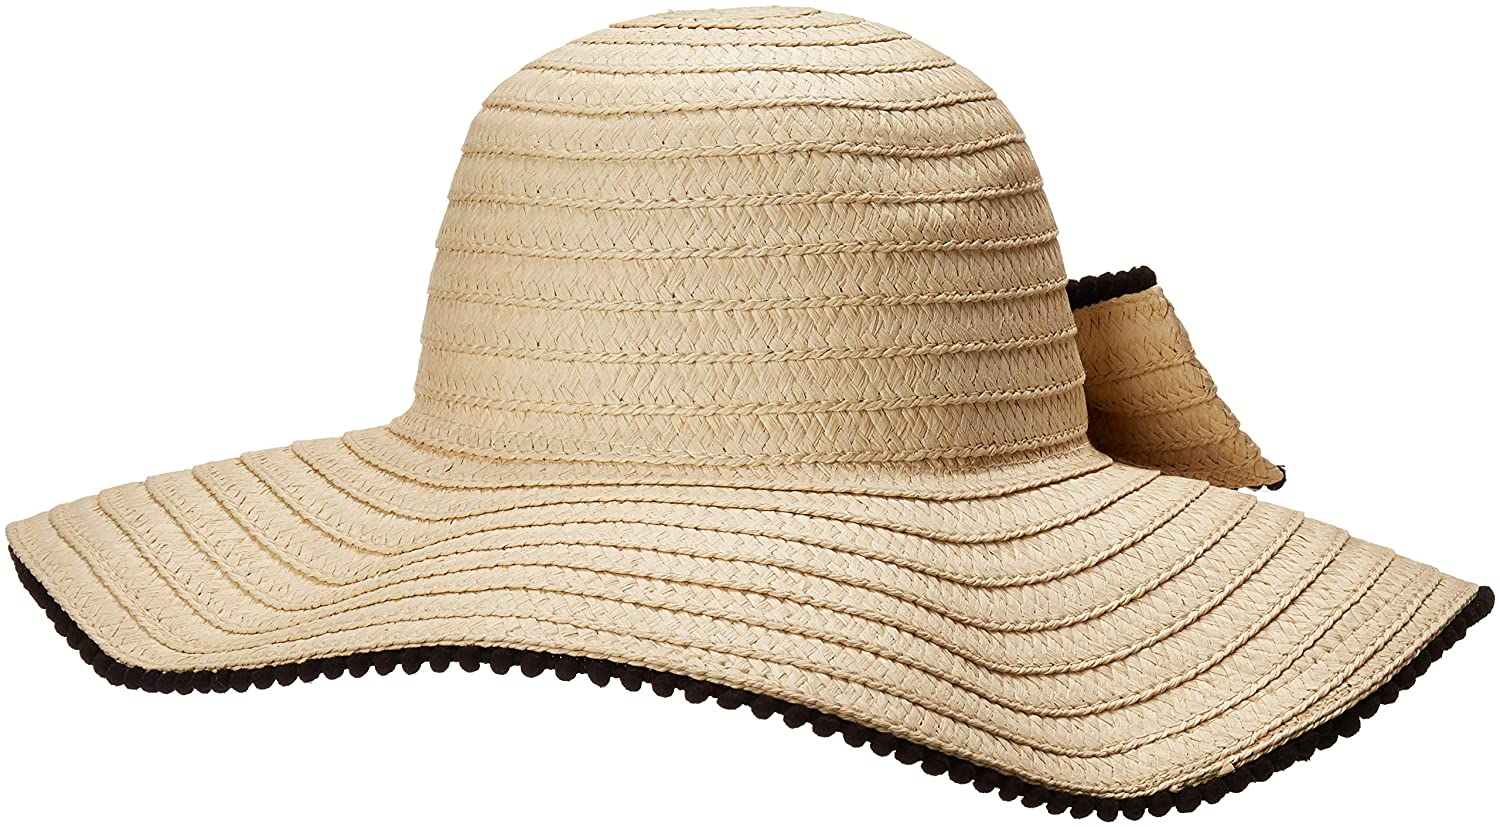 208ca12e1 Betsey Johnson Women's Floppy Hat with Bow & Pom Trim, Natural One ...